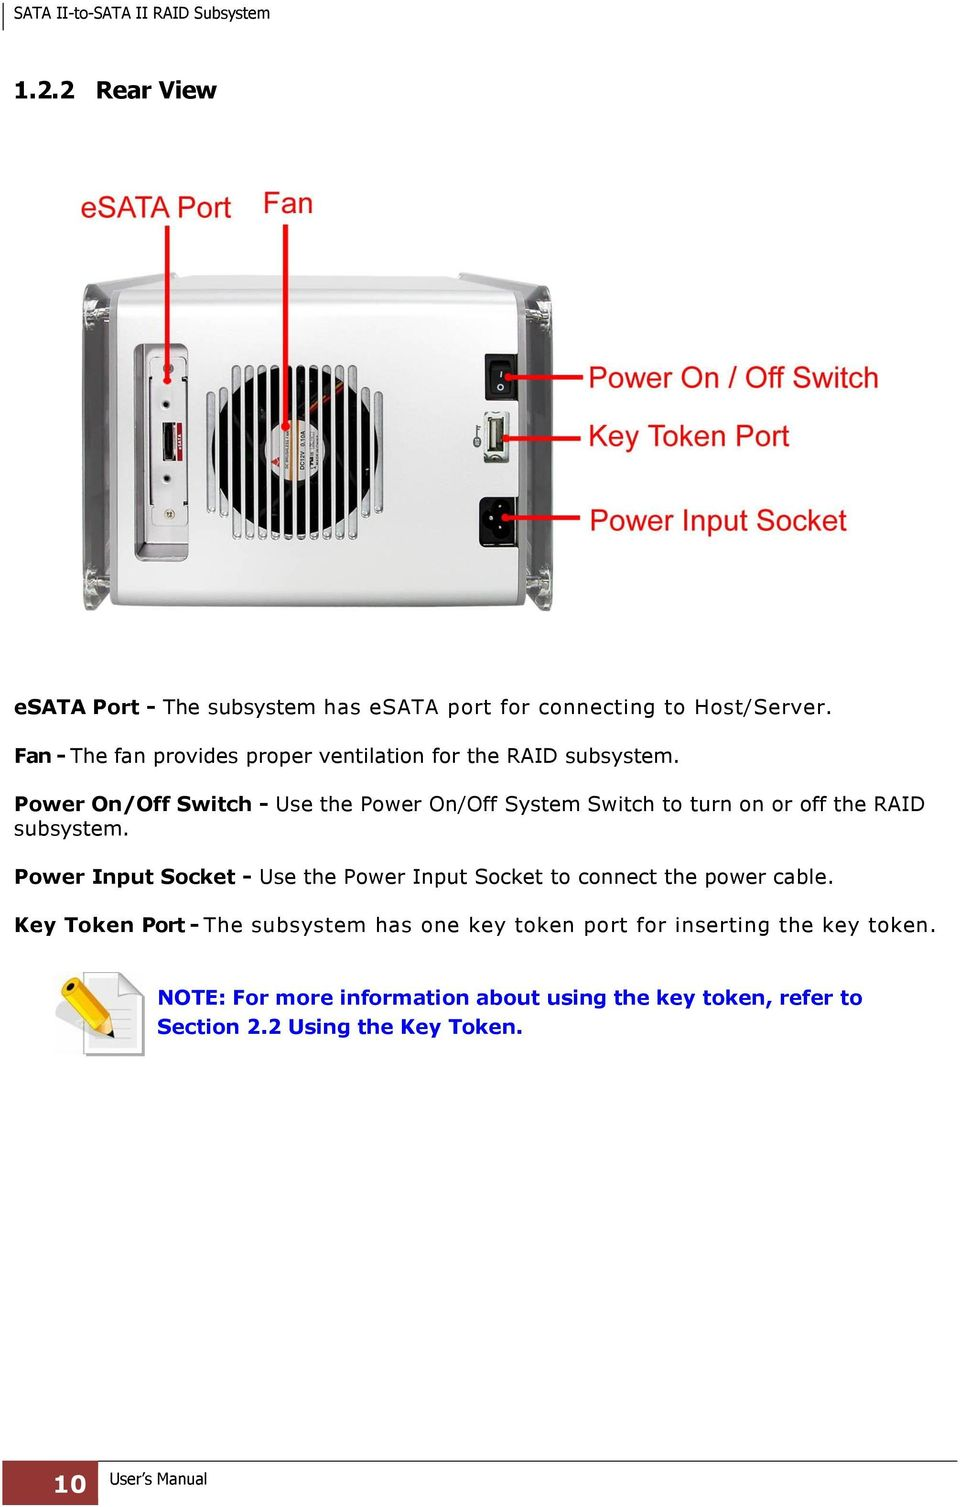 Power On/Off Switch - Use the Power On/Off System Switch to turn on or off the RAID subsystem.